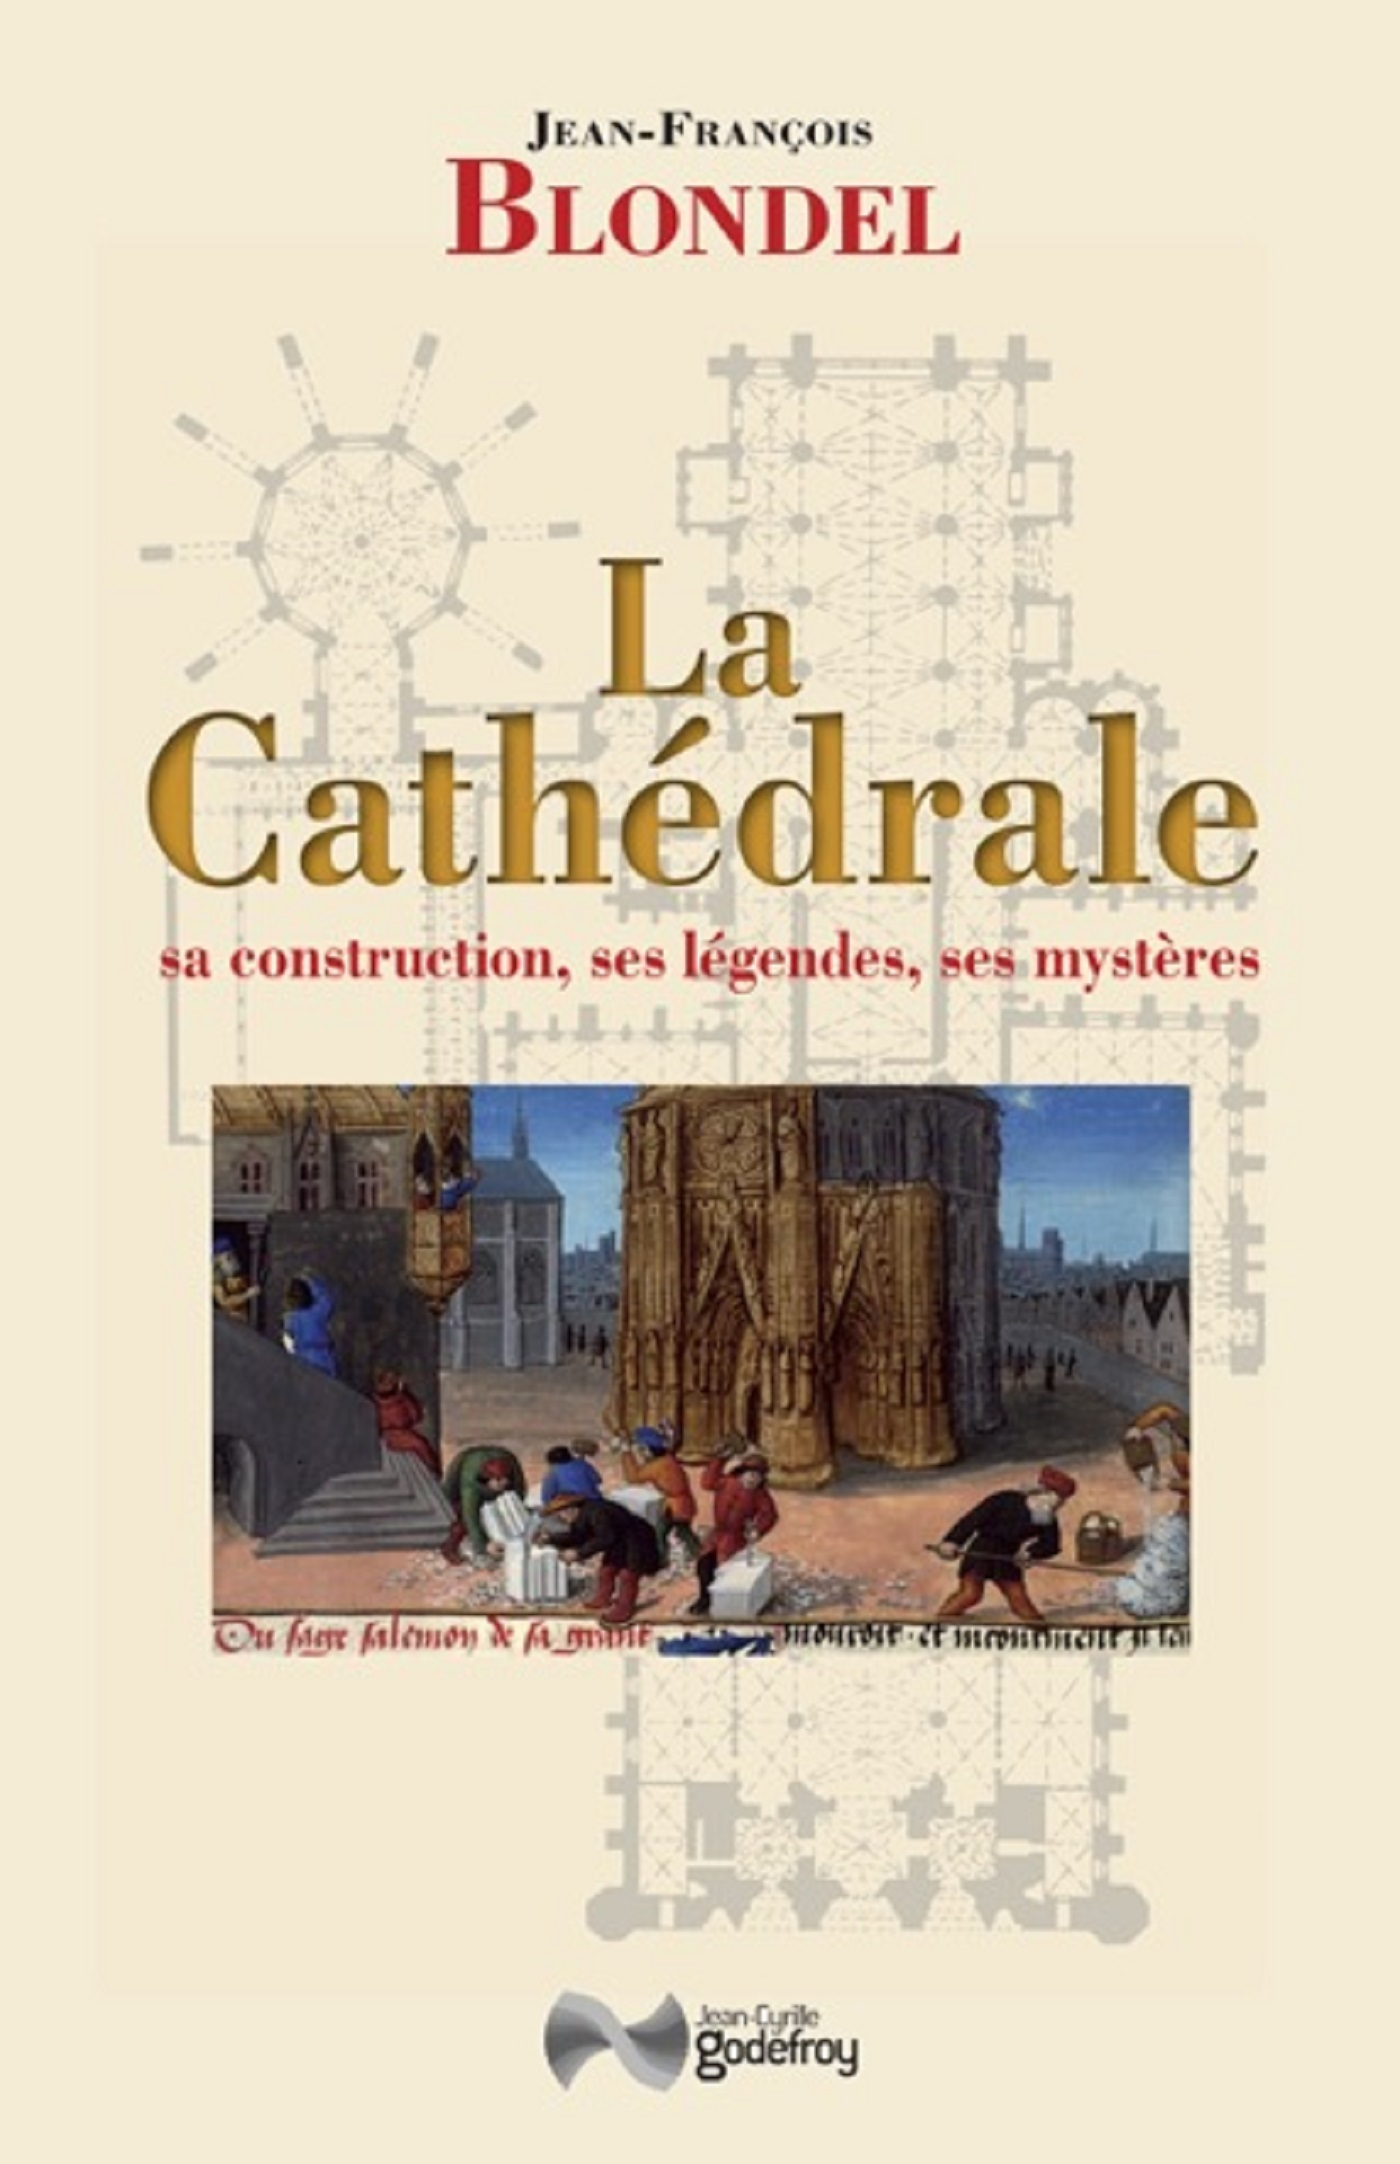 LA CATHEDRALE - SA CONSTRUCTION, SES LEGENDES, SES MYSTERES